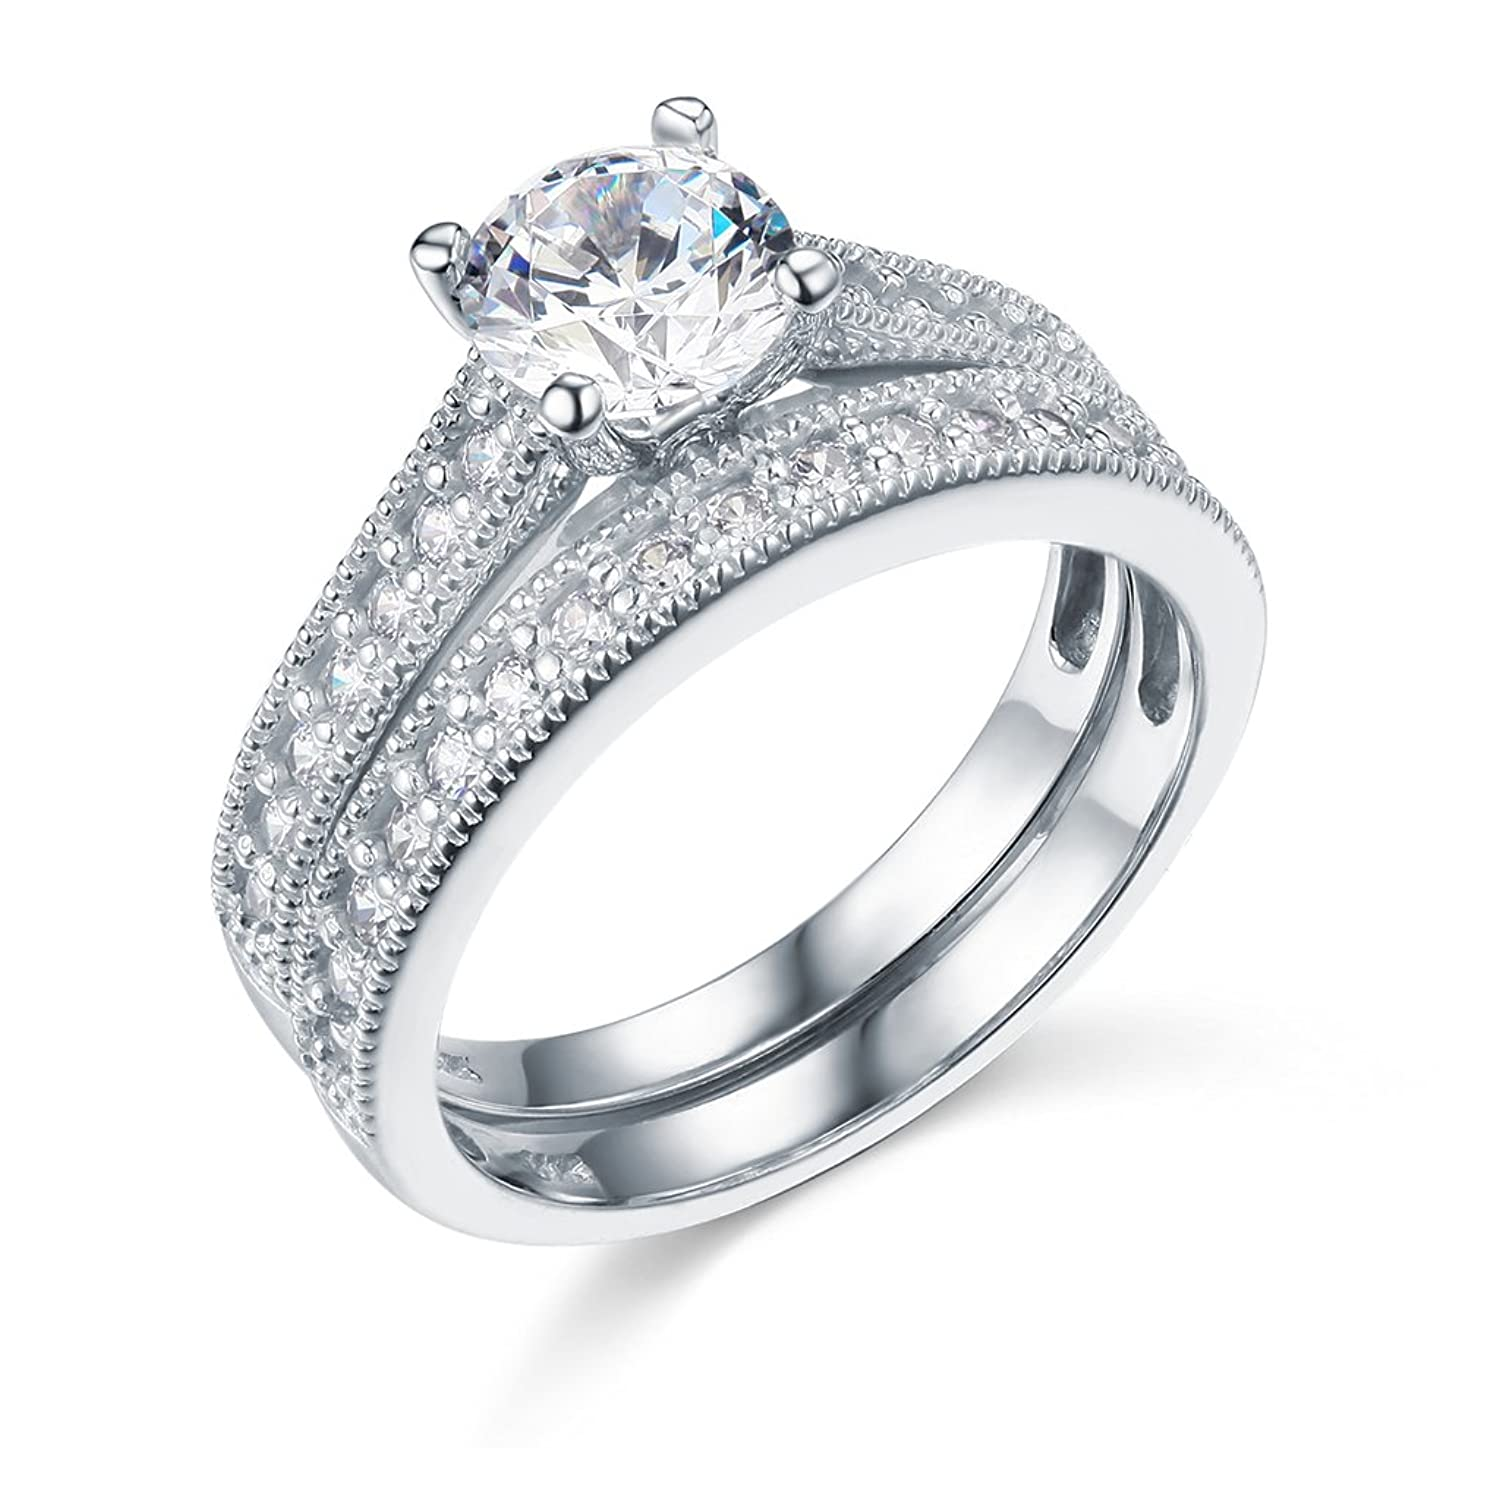 14k White Gold SOLID Wedding Engagement Ring and Wedding Band 2 Piece Set